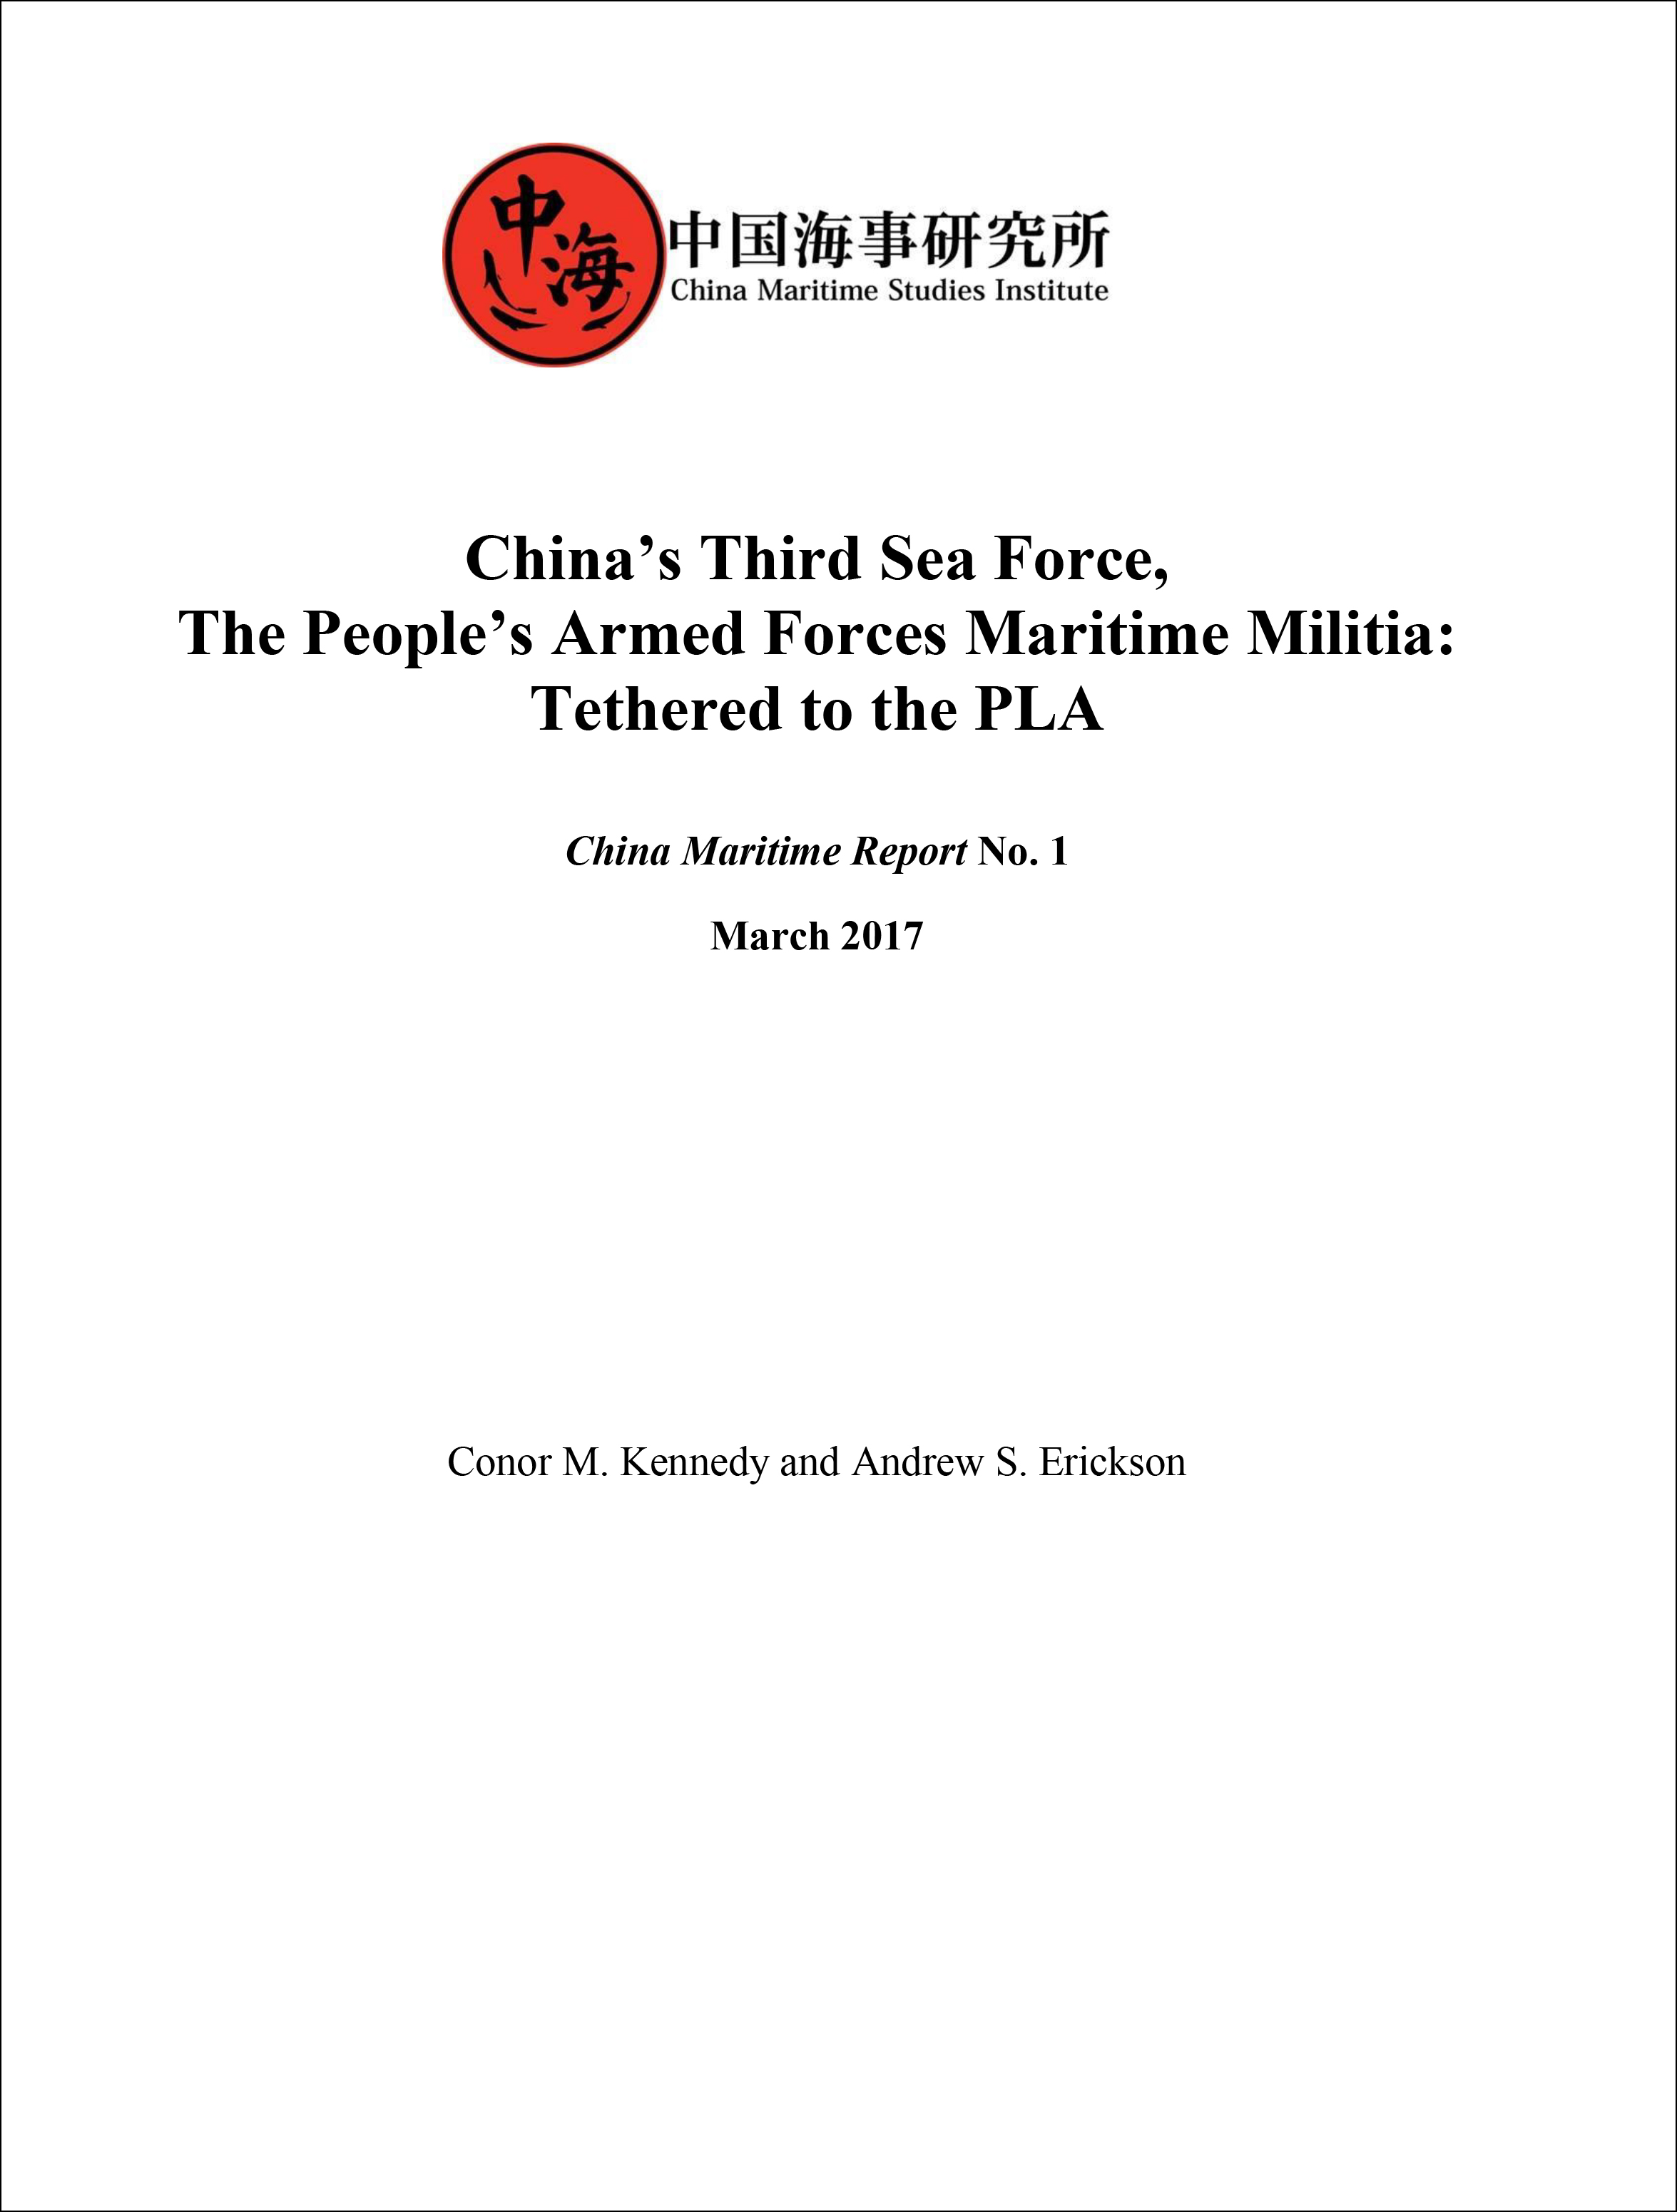 China Maritime Report No. 1: China's Third Sea Force, The People's Armed Forces Maritime Militia: Tethered to the PLA Cover